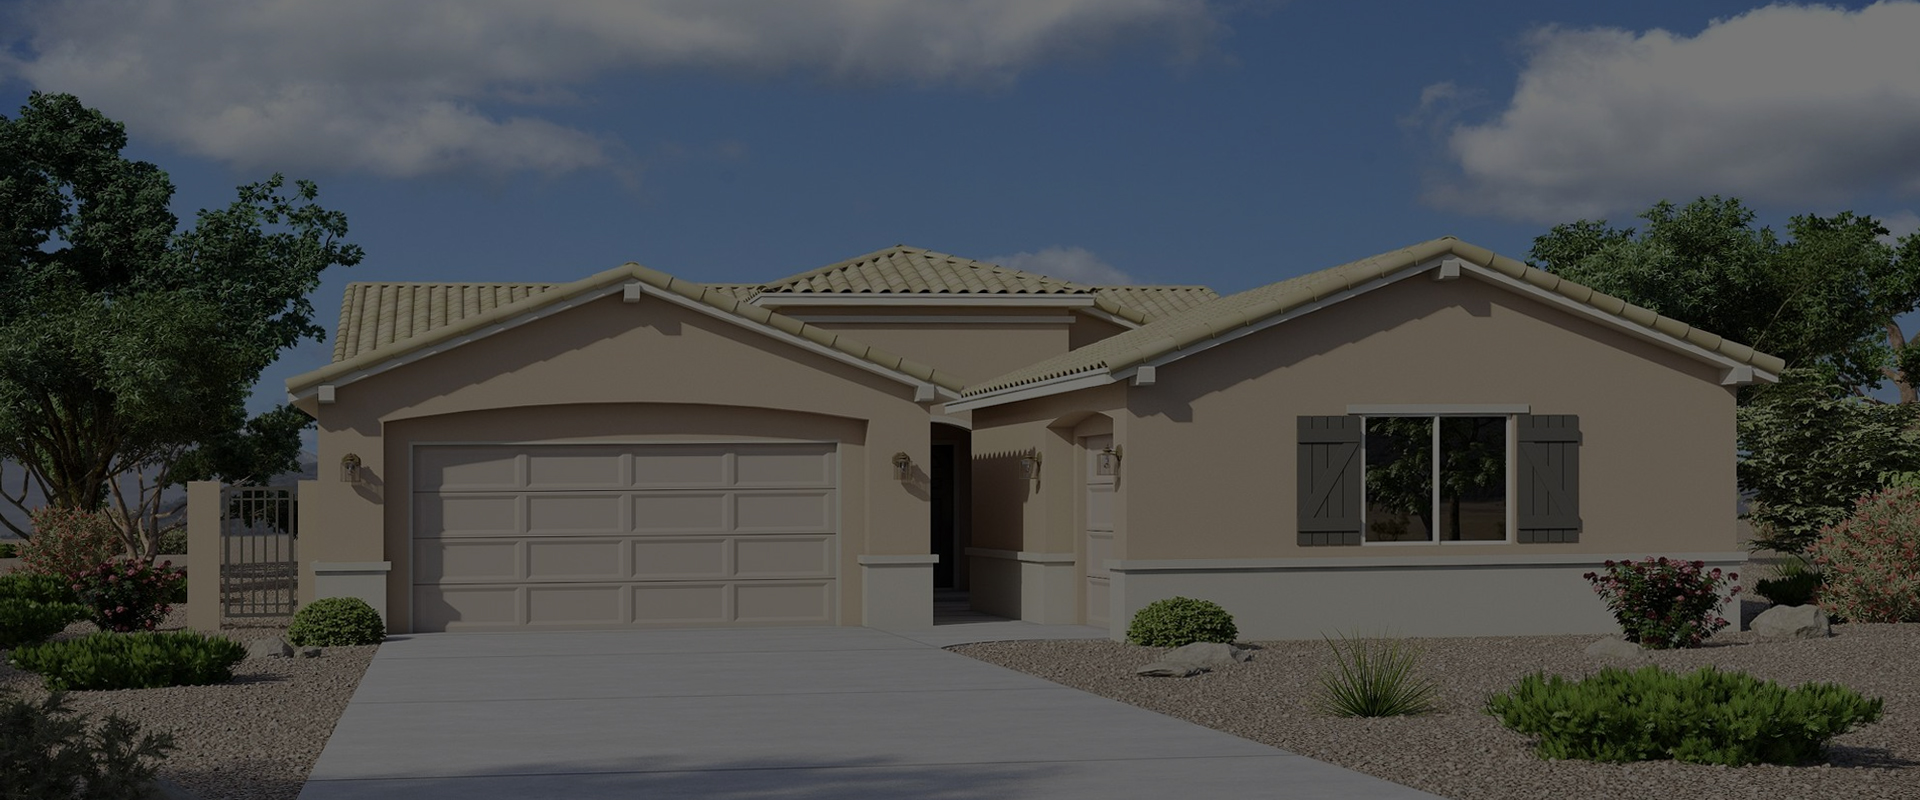 Cash for homes in las vegas mr checkbook get cash for House to buy in las vegas